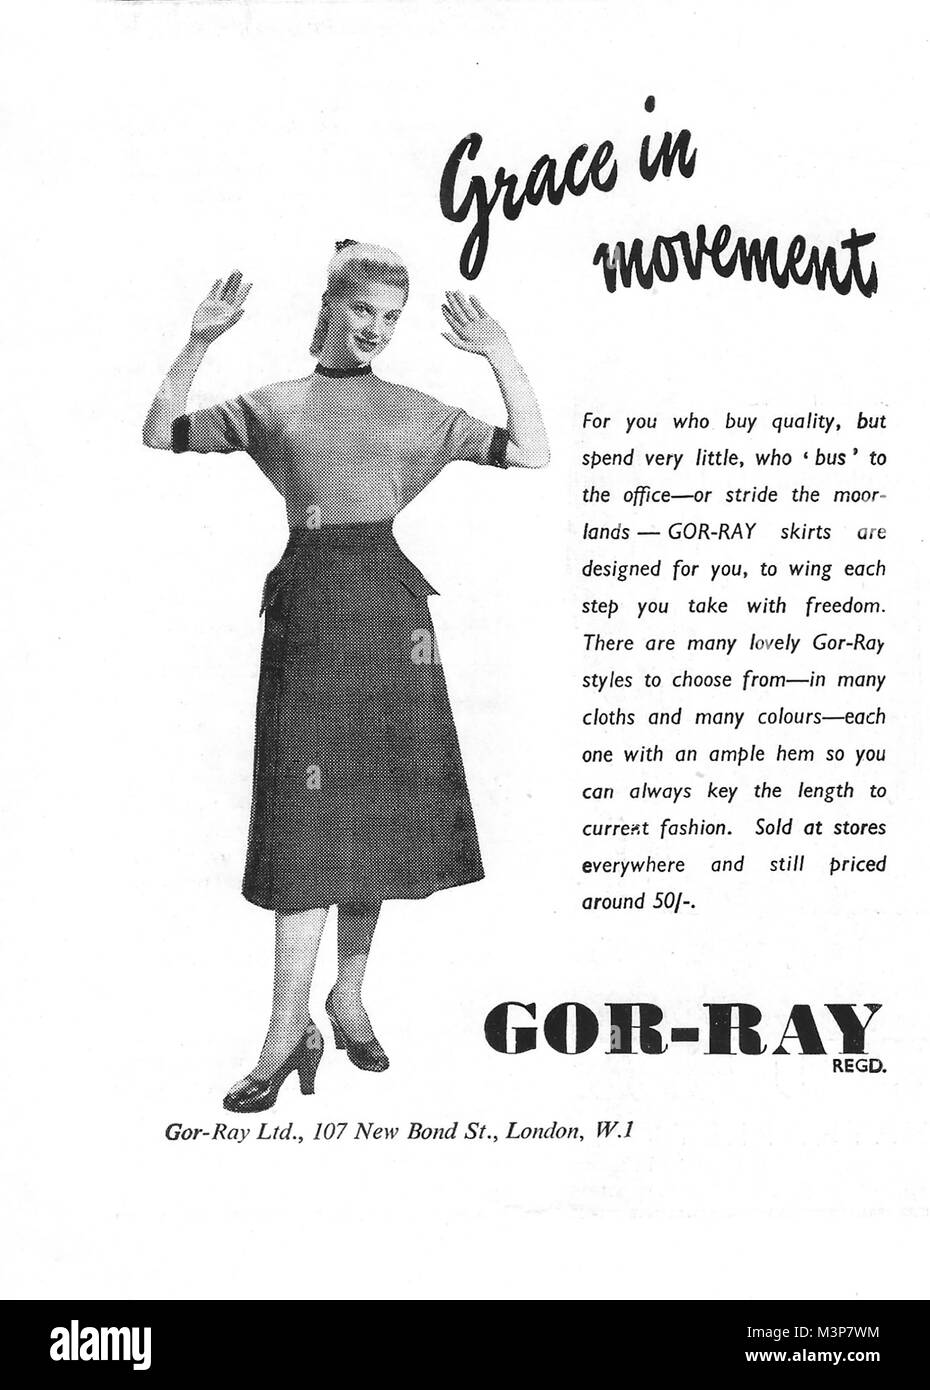 Gor-Ray grace in Movement women clothing advert, advertising in Country Life magazine UK 1951 - Stock Image